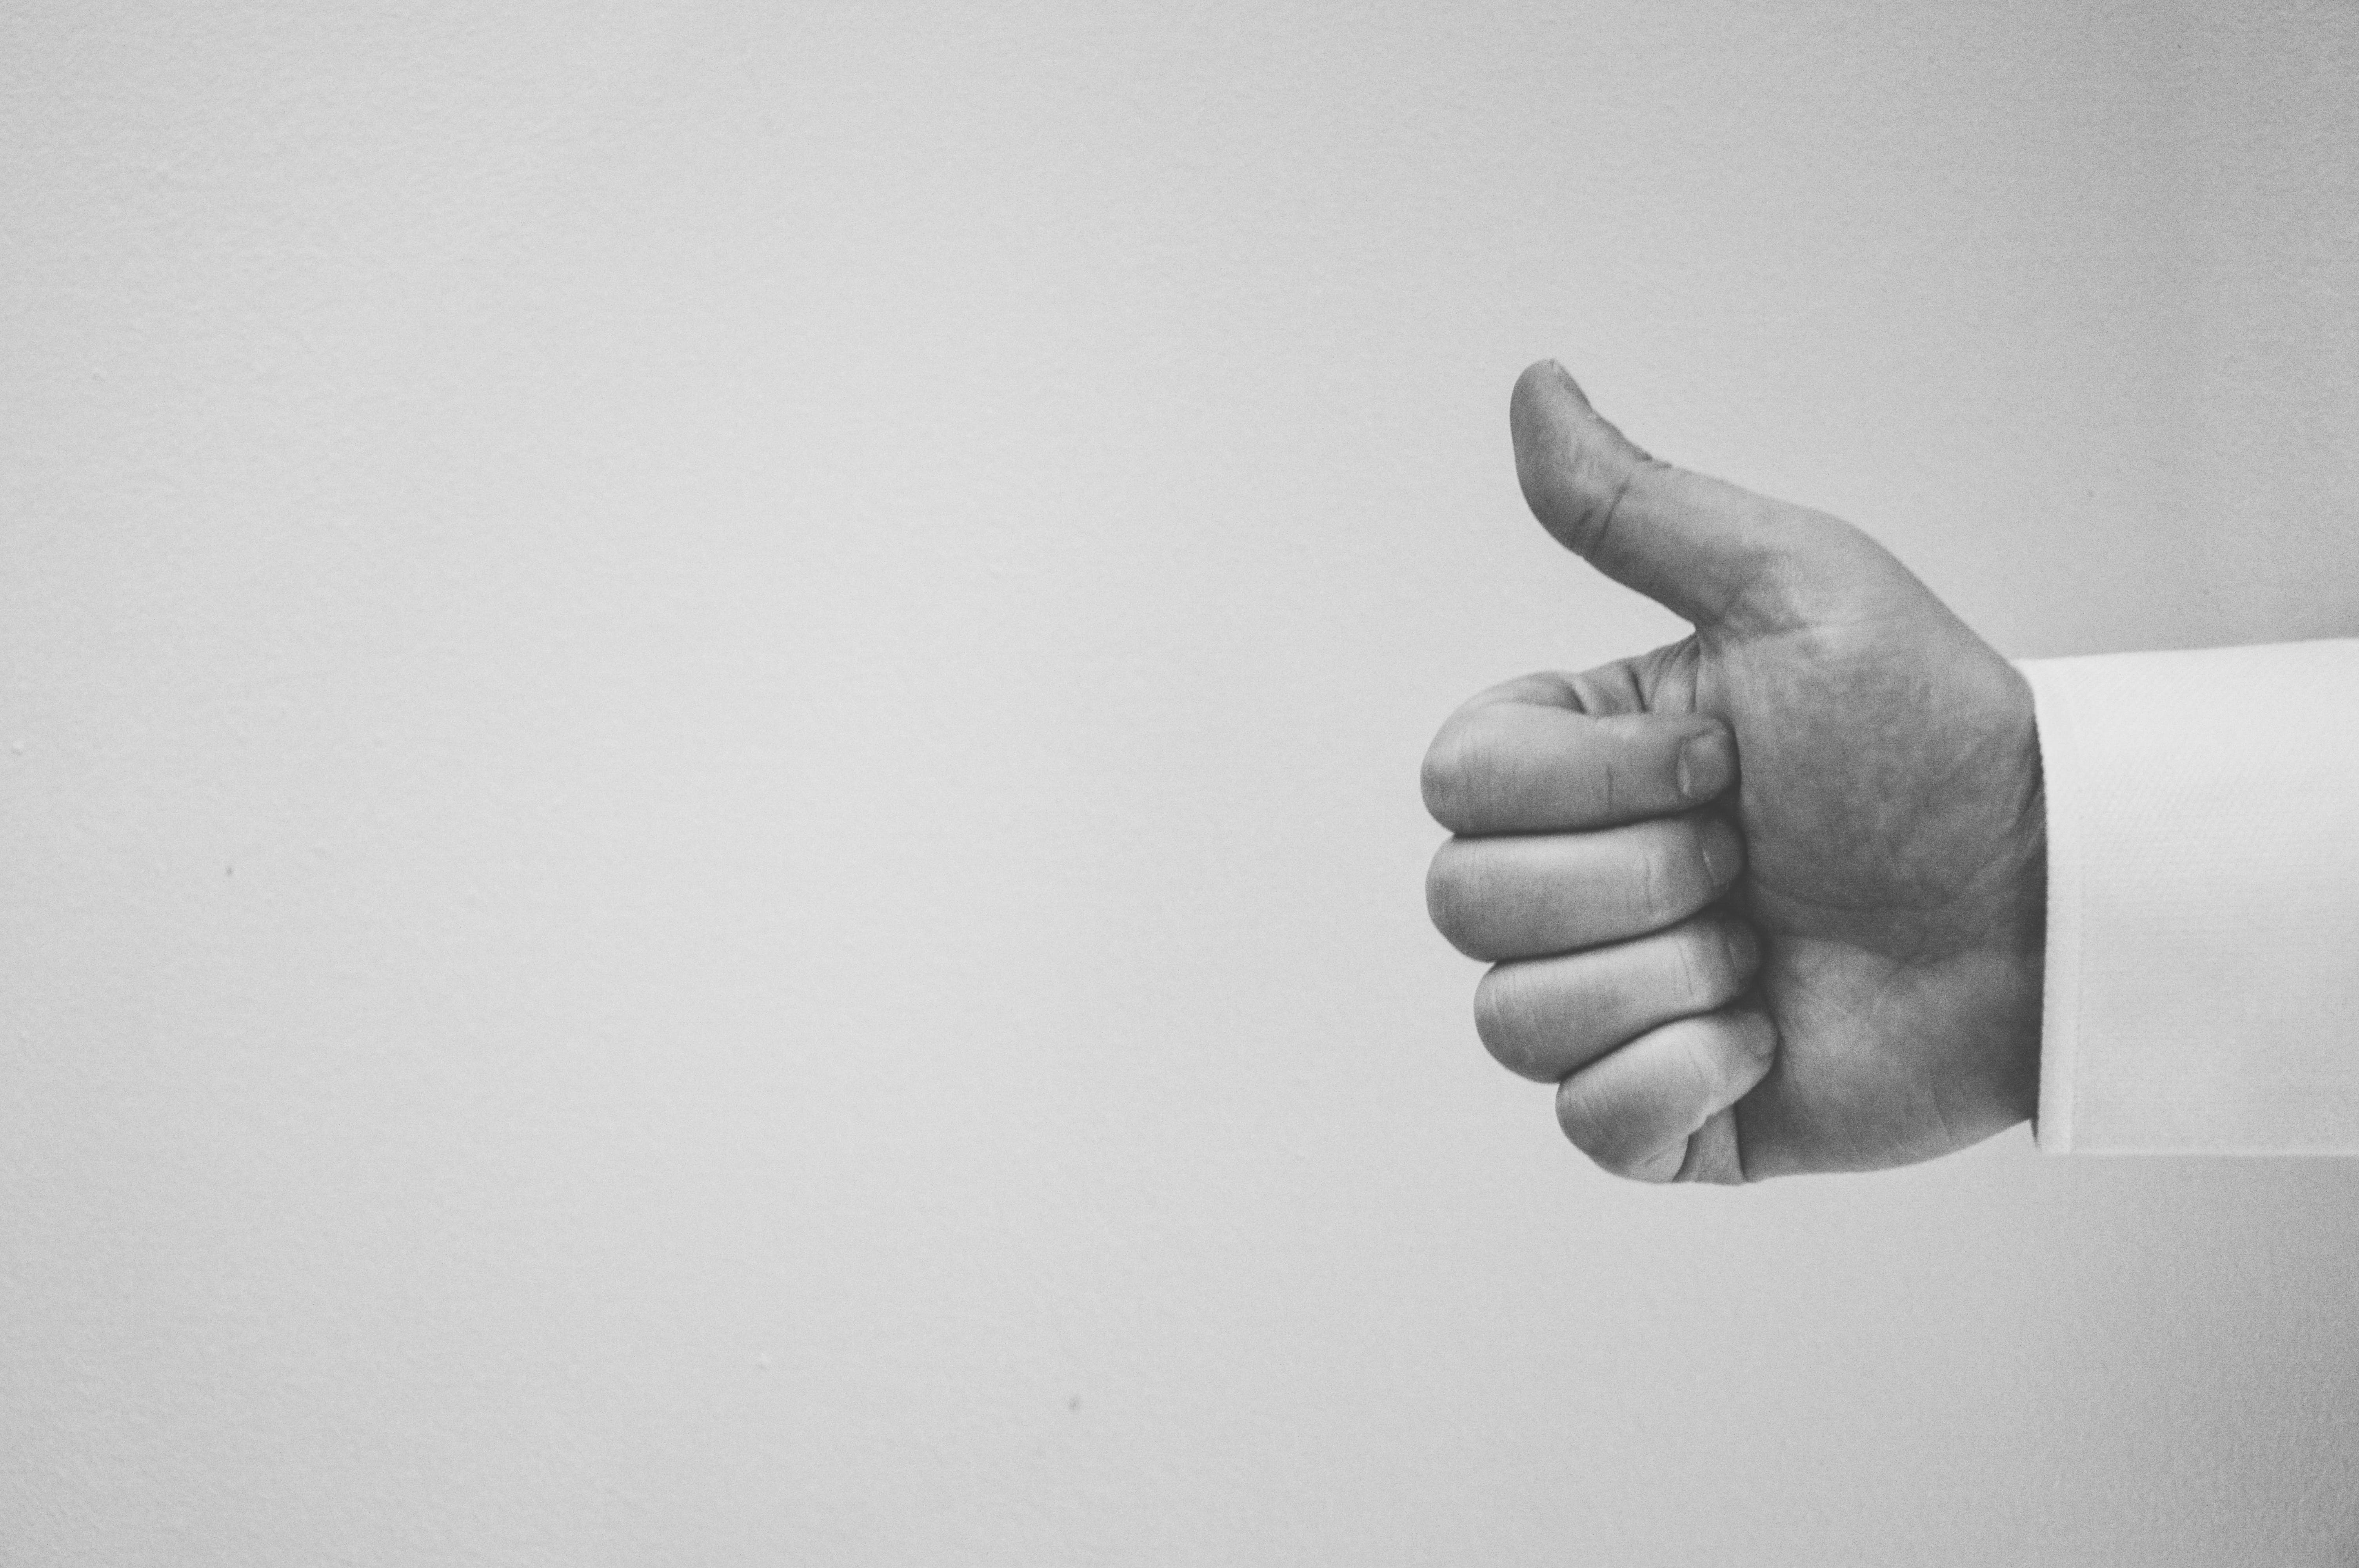 Free stock photo of black-and-white, hand, whitespace, success